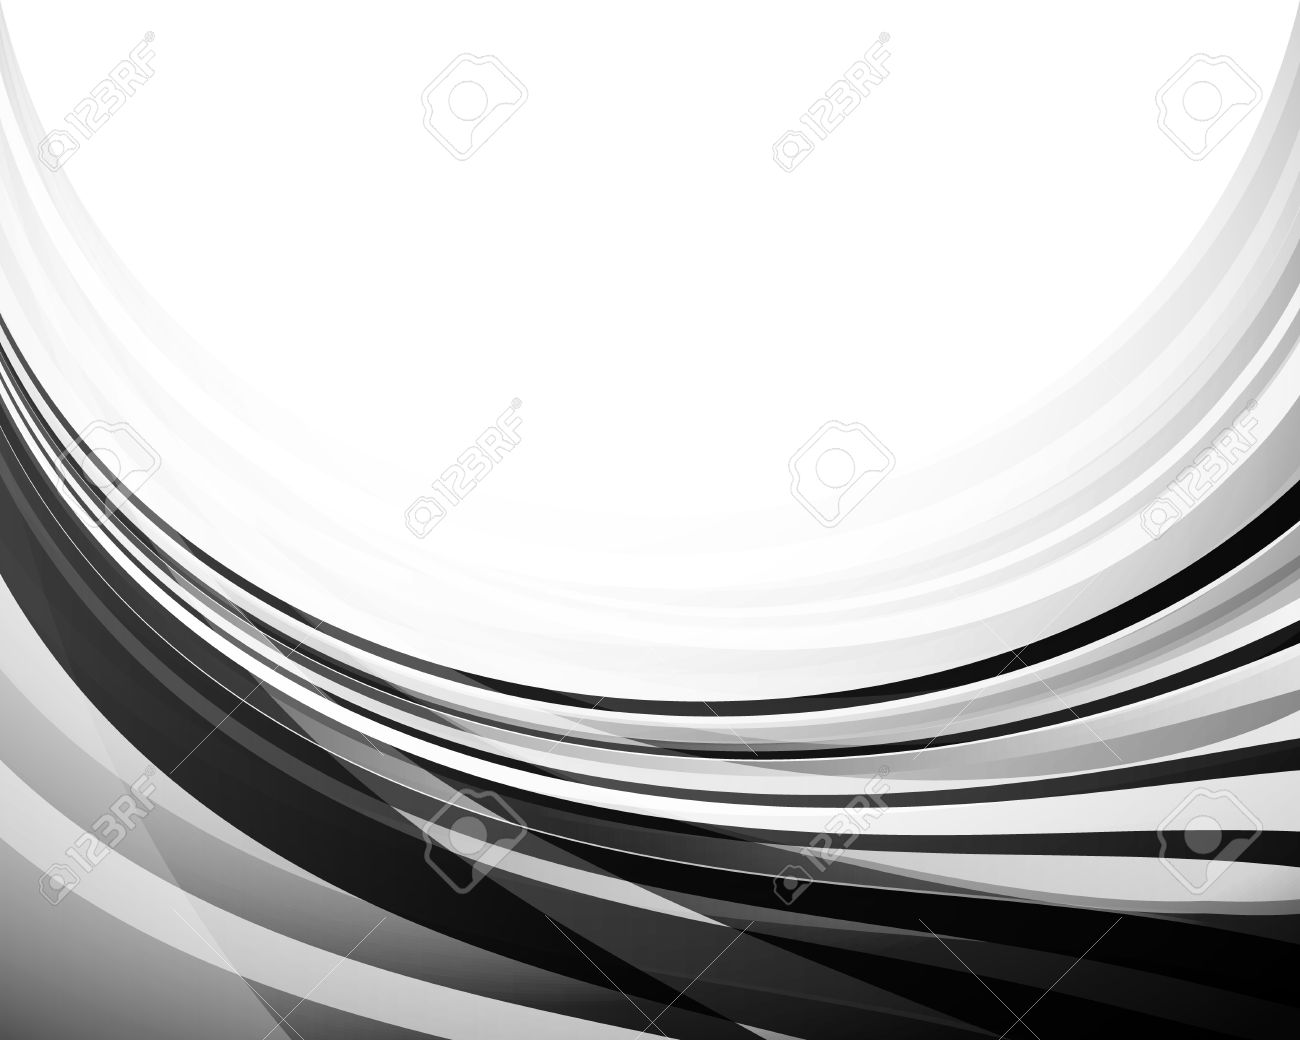 Background image grayscale - Grayscale Background Stock Vector 8977721